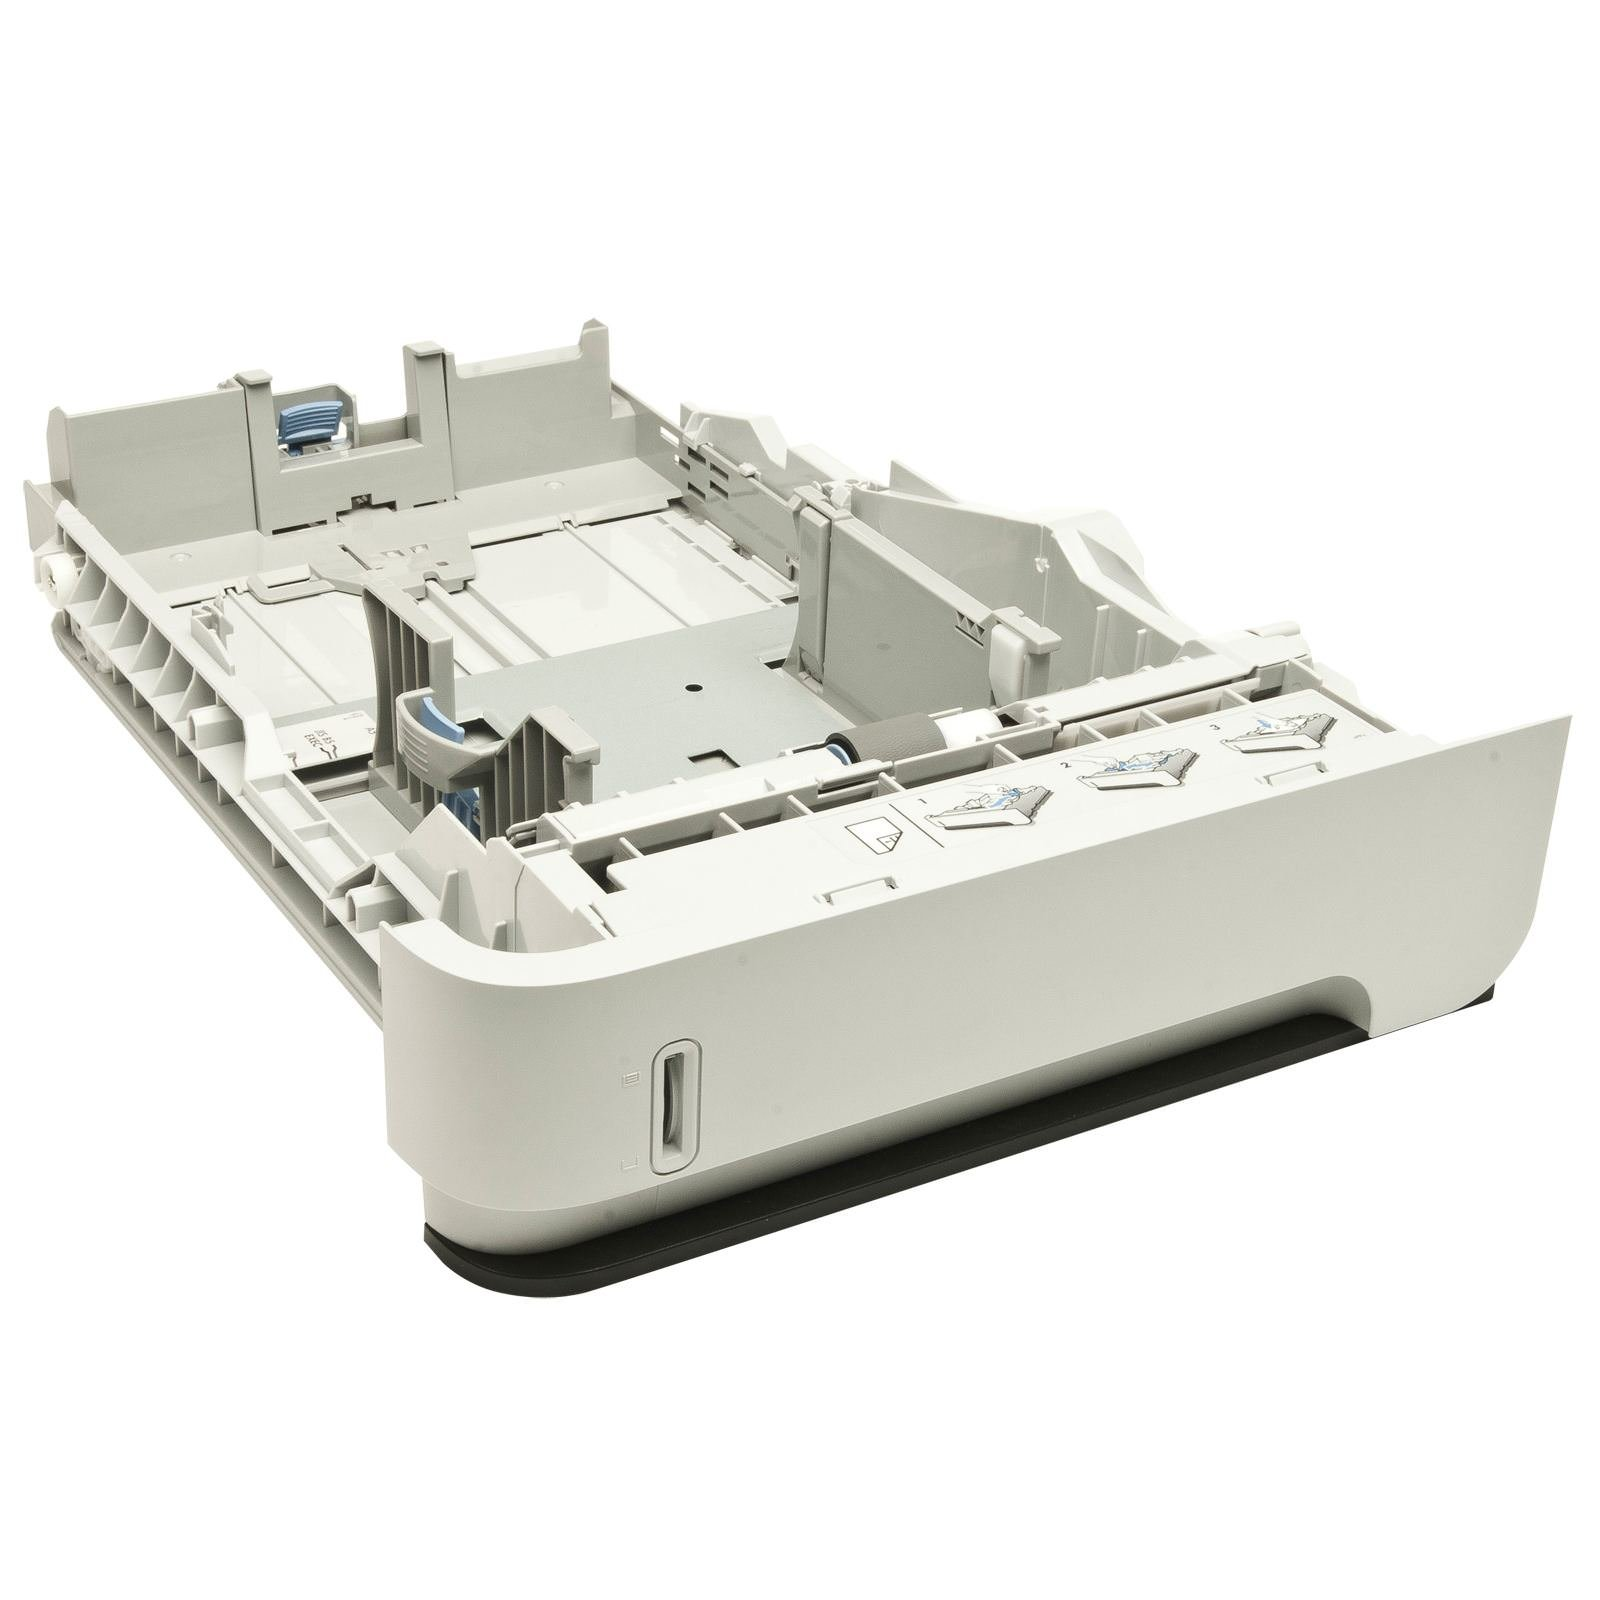 HP RM1-4559 Tray 2 Replacement Assembly Compatible with HP LaserJet P4015 / P4014 / P4515 / M600